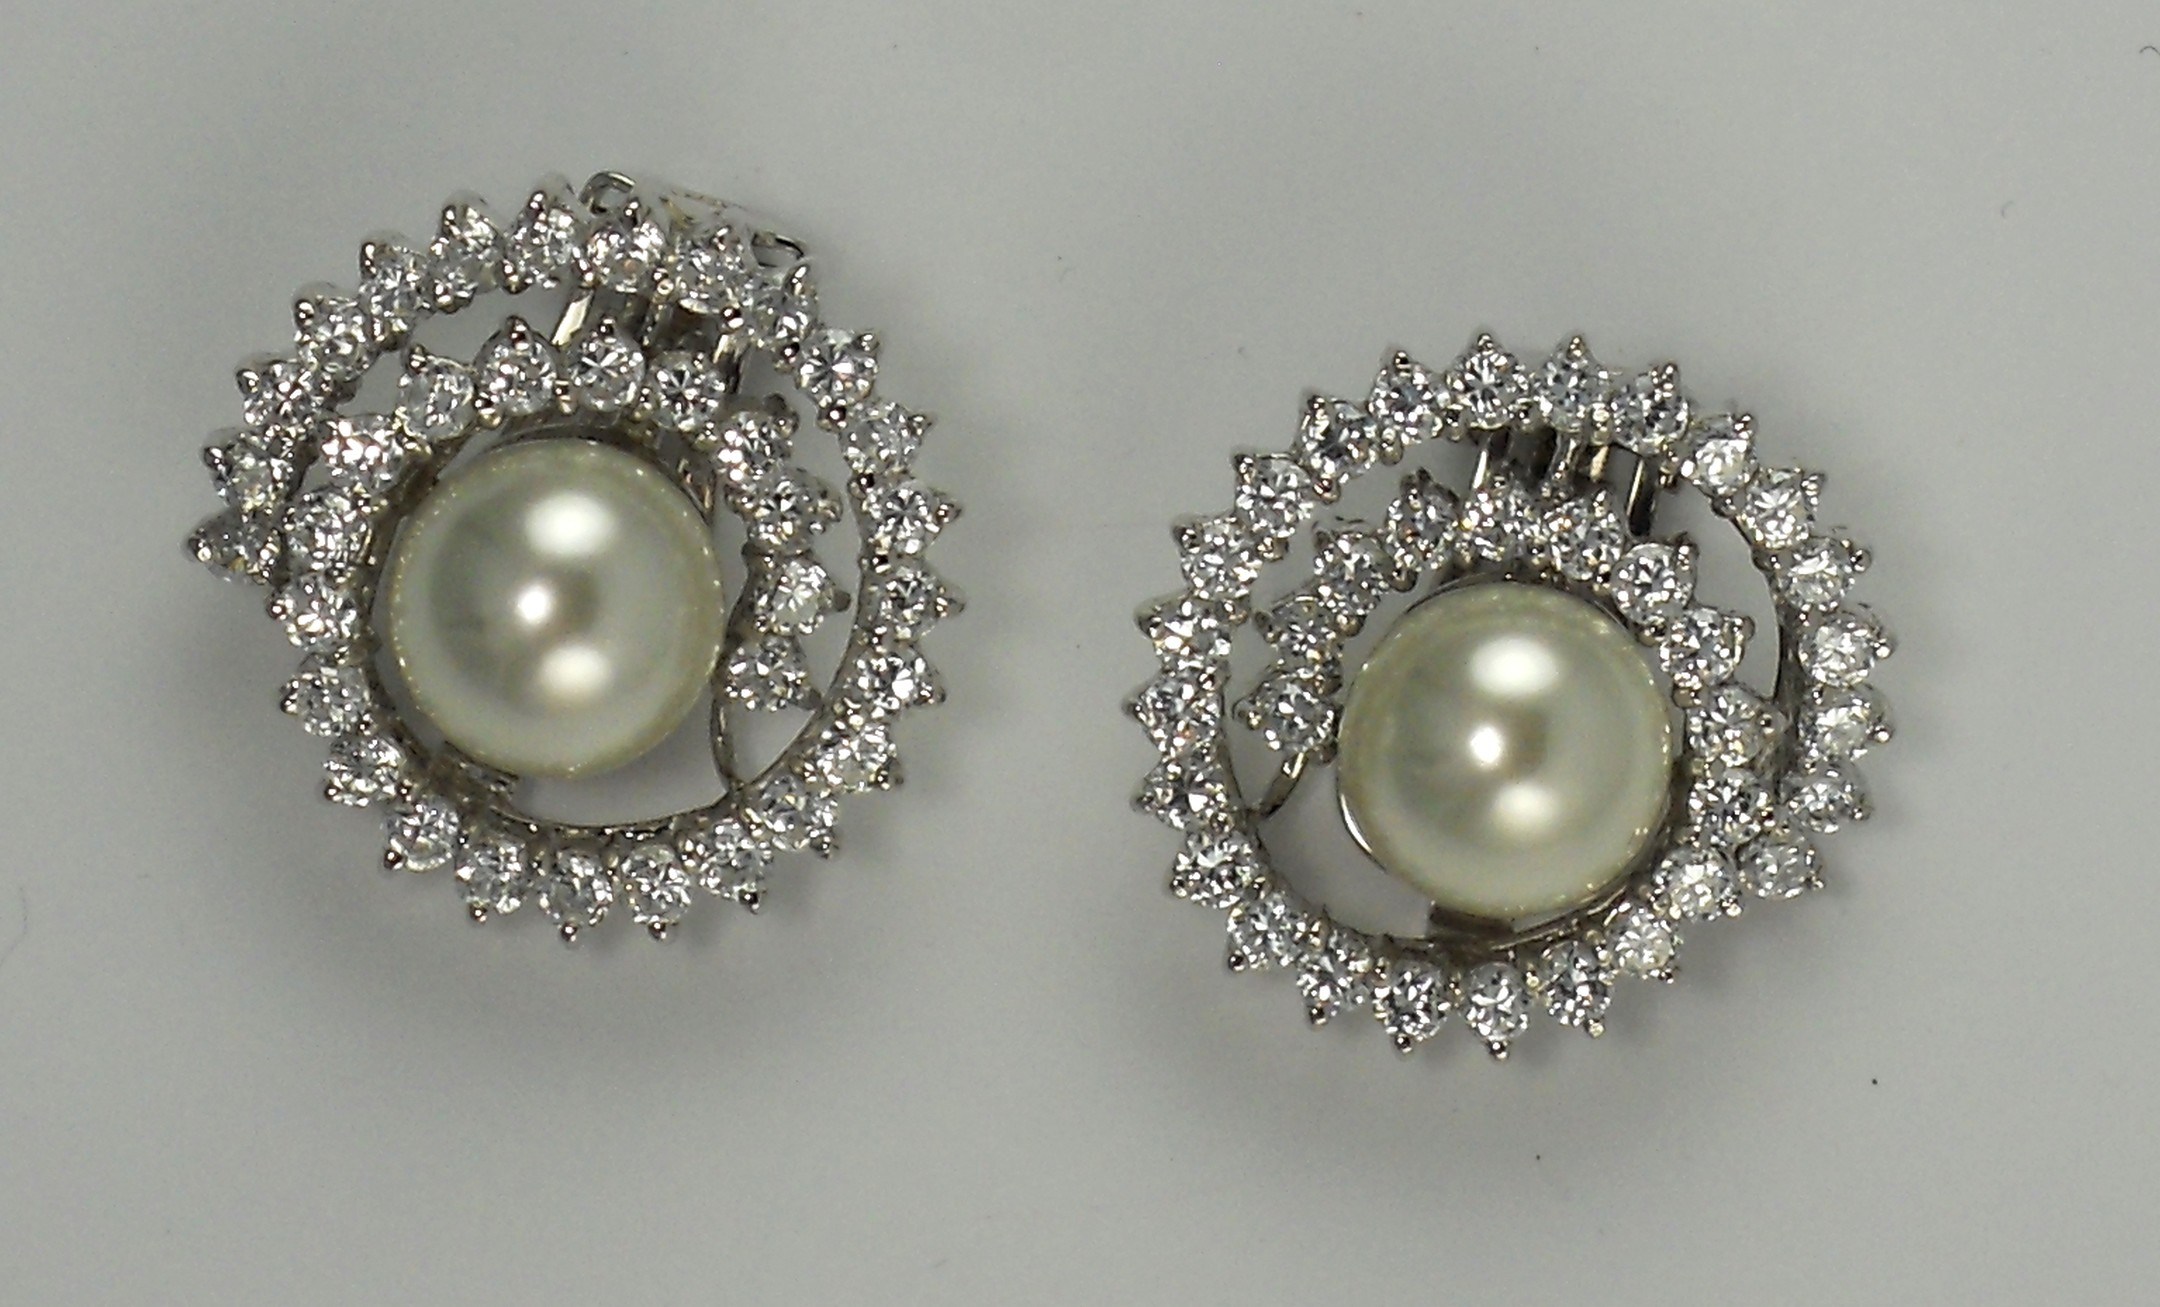 CIRO. White Shell Pearl set in sterling silver rhodium plate swirl with white cubic zirconia brilliant cut stones.jpg